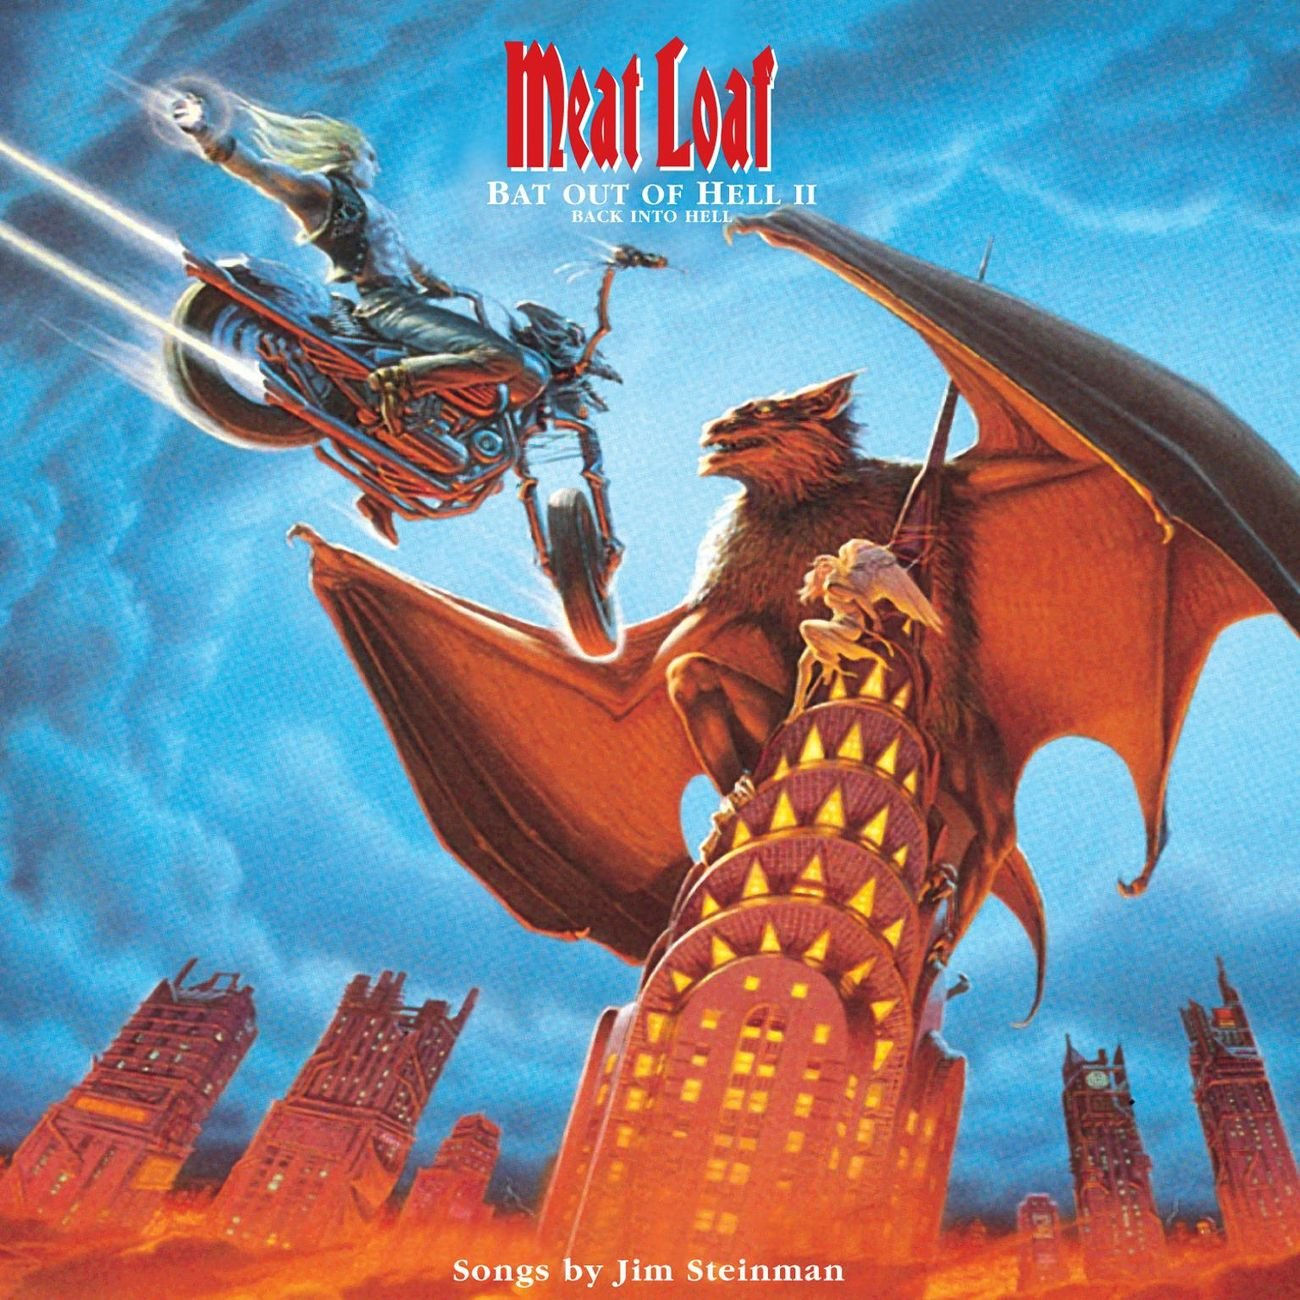 Bat Out Of Hell Vol. 2 - Back Into Hell - Meat Loaf: Amazon.de: Musik